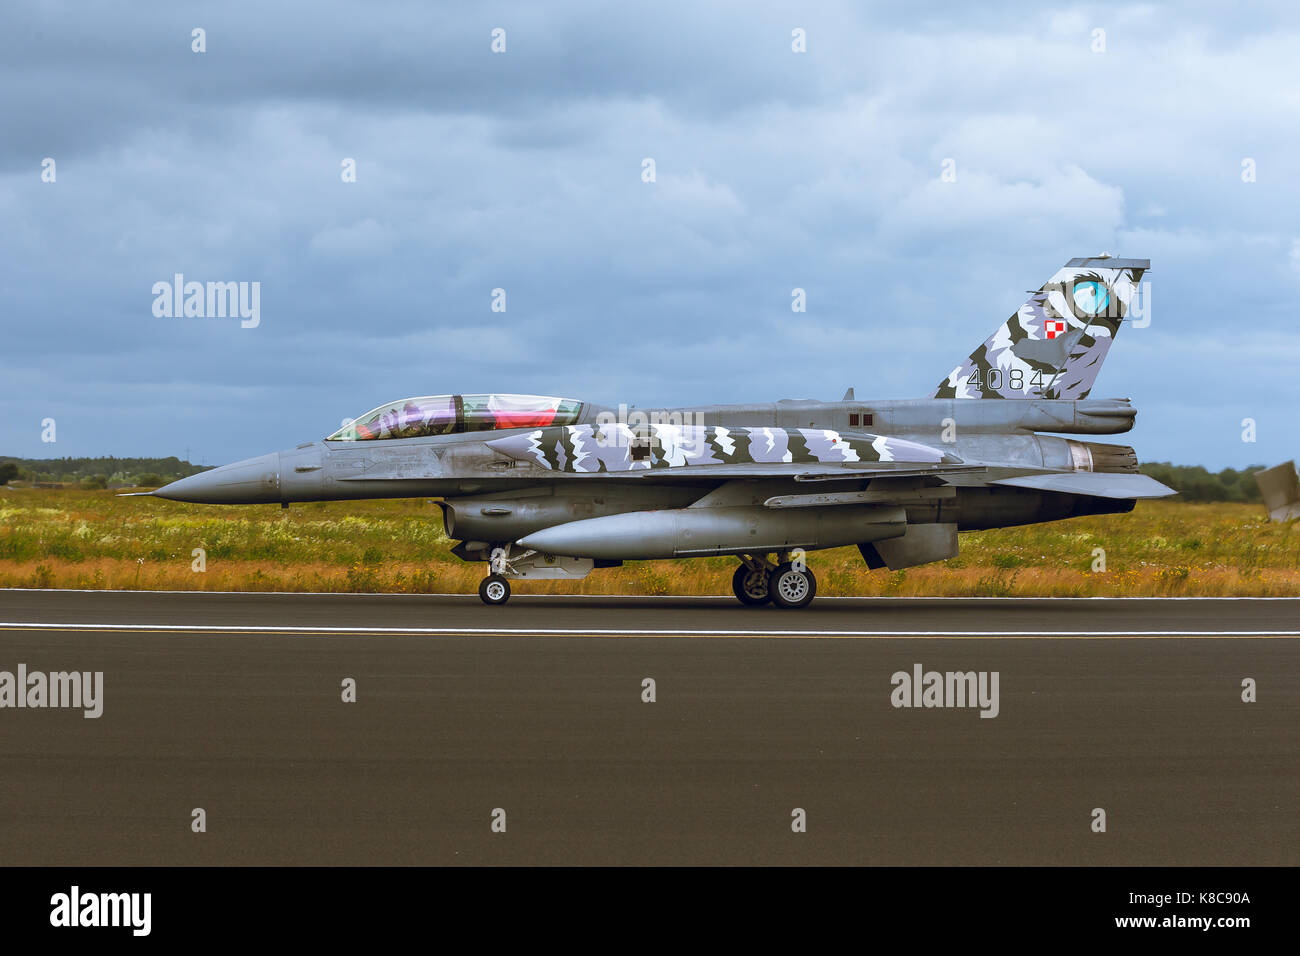 General Dynamics F-16 Fighting Falcon at NATO Tiger Meet M2014 - Stock Image